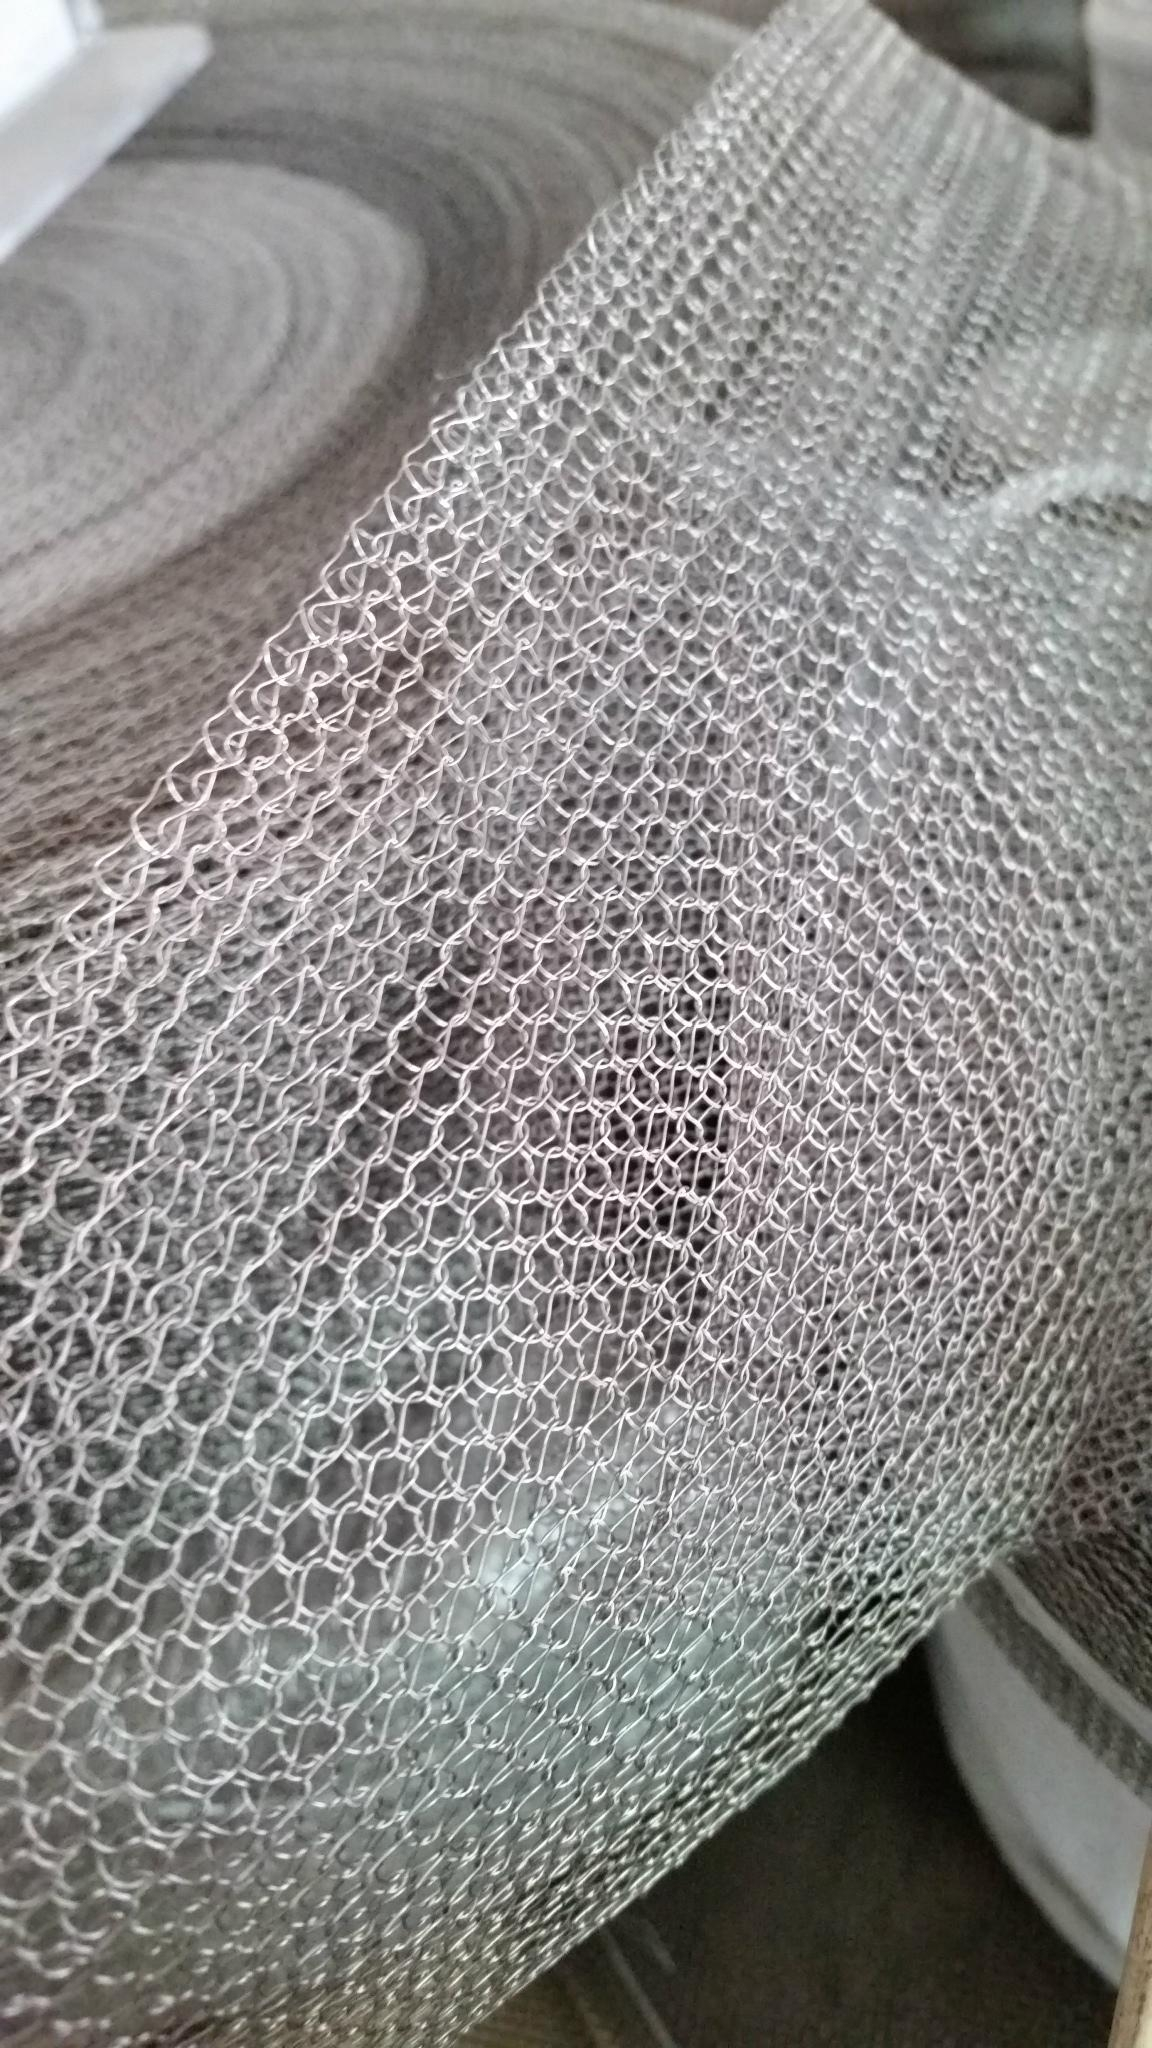 STAINLESS STEEL KNITTED WIRE MESH - FLS-09 - FLS (China Manufacturer ...